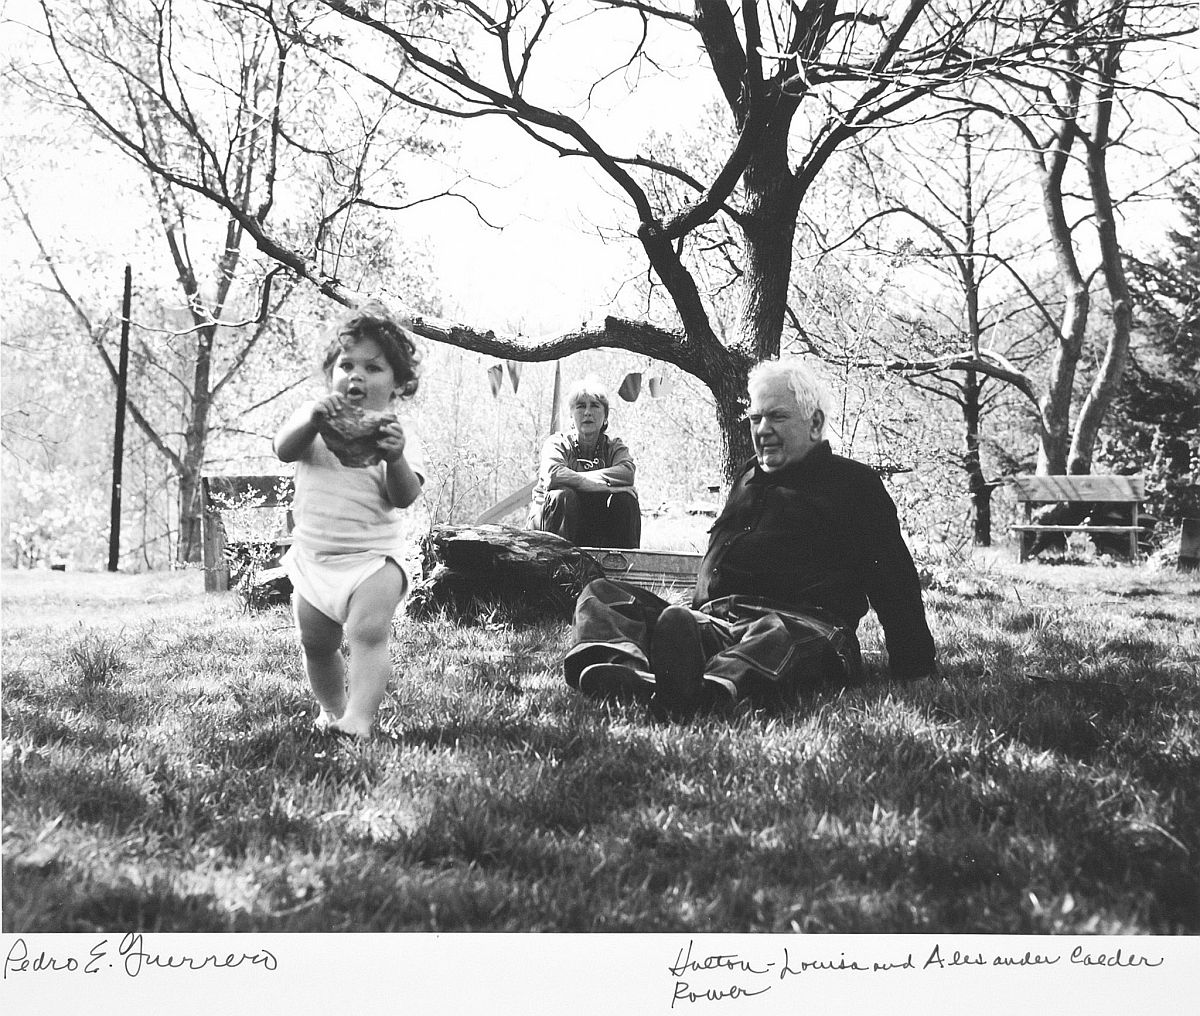 Estate of Pedro E. Guerrero, Holton Rower, Louisa and Sandy Calder, Rocksbury, CT, 1964